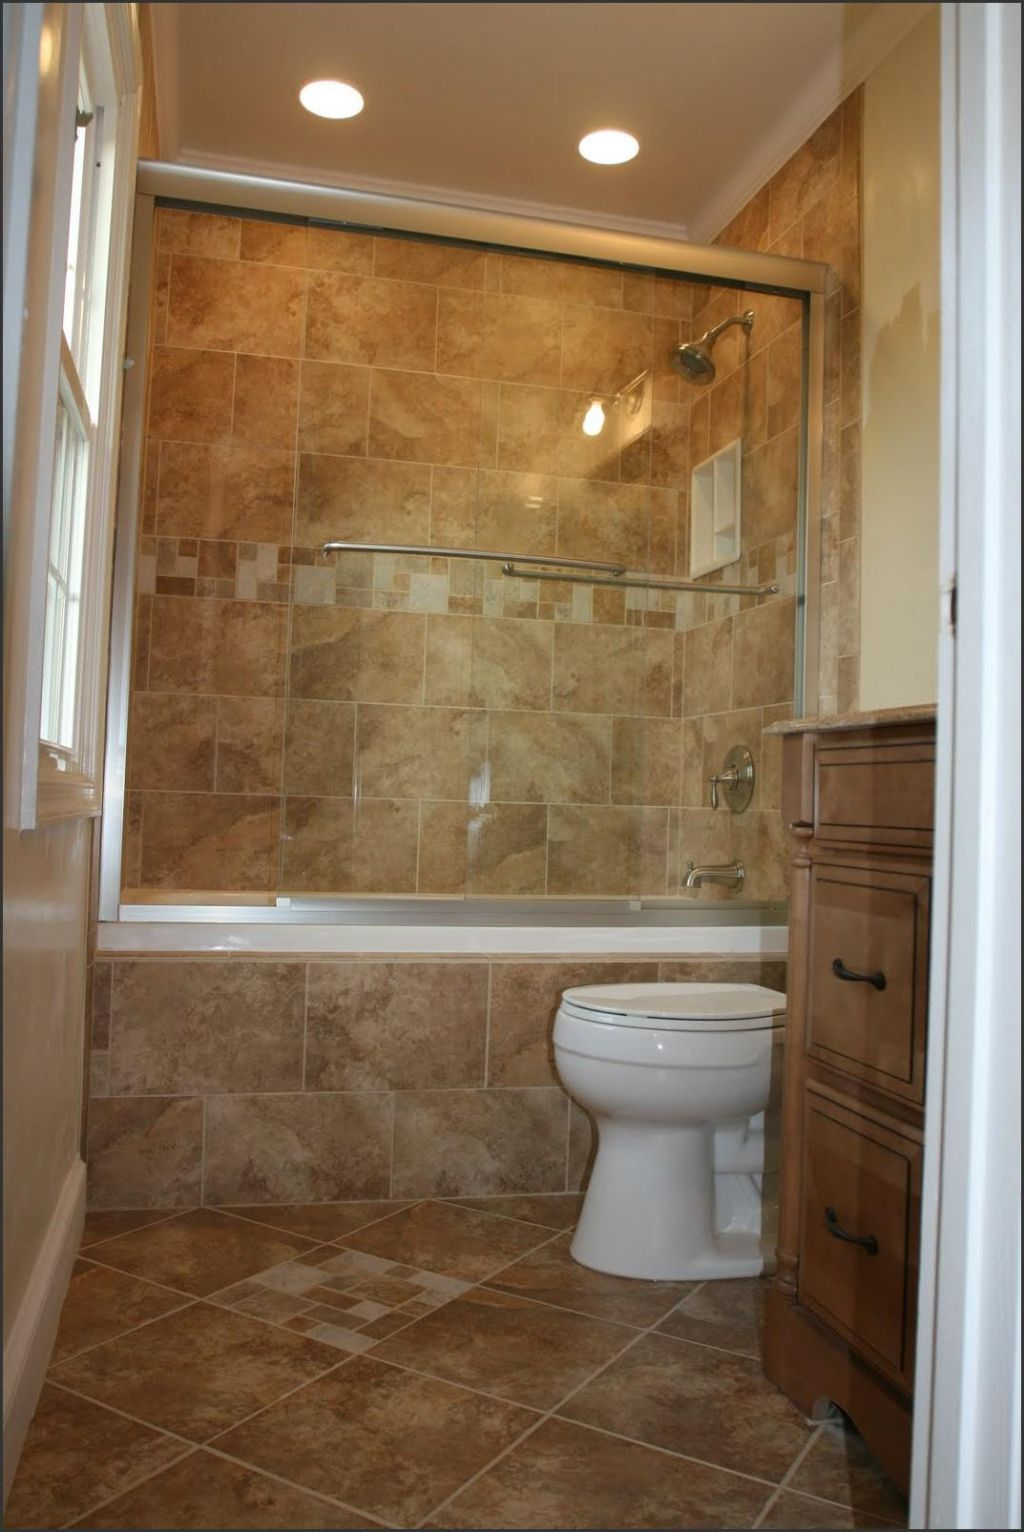 bathroom tiles designs pictures photo - 3